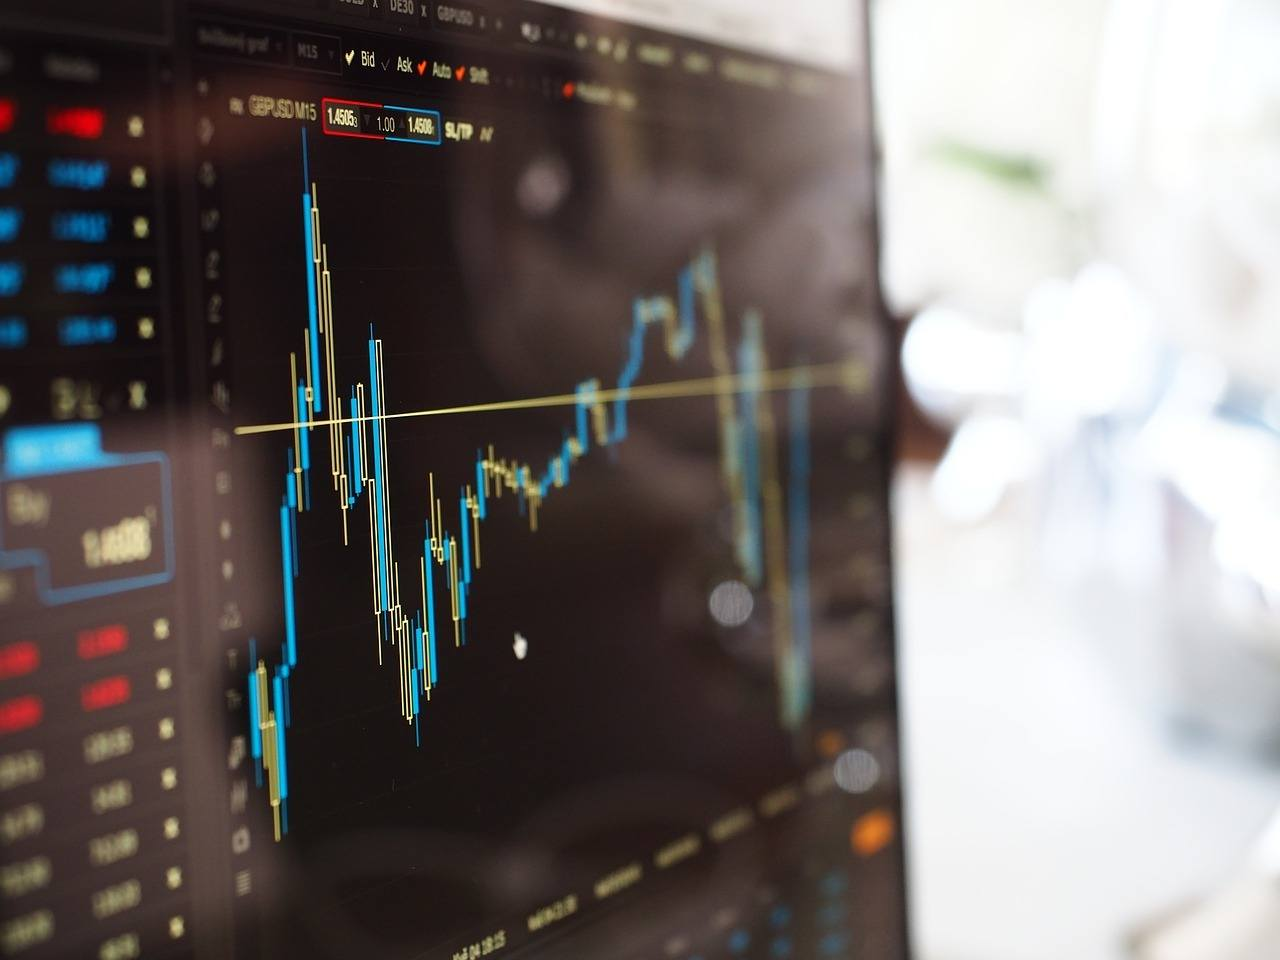 15 Popular Binary Options Brokers of Which One Is The Best For Trading? - blogger.com